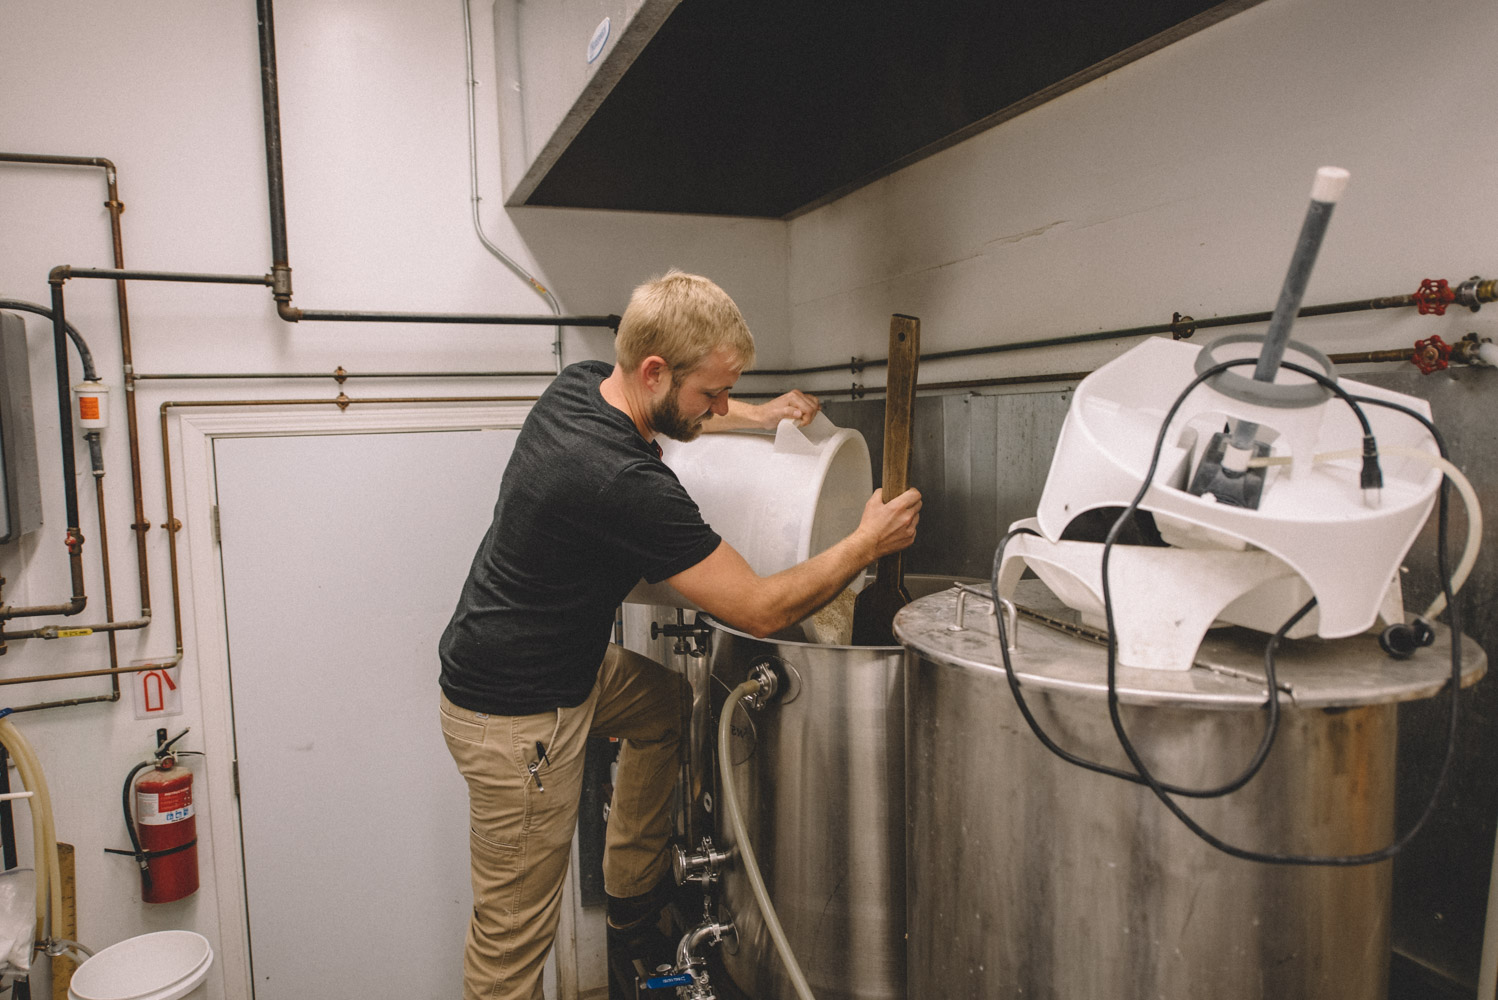 Scratch-Brewing-Co-Foraging-Carbondale-Ava-Illinois-Good-Beer-Hunting-Matt-Sampson-Photography_740.jpg